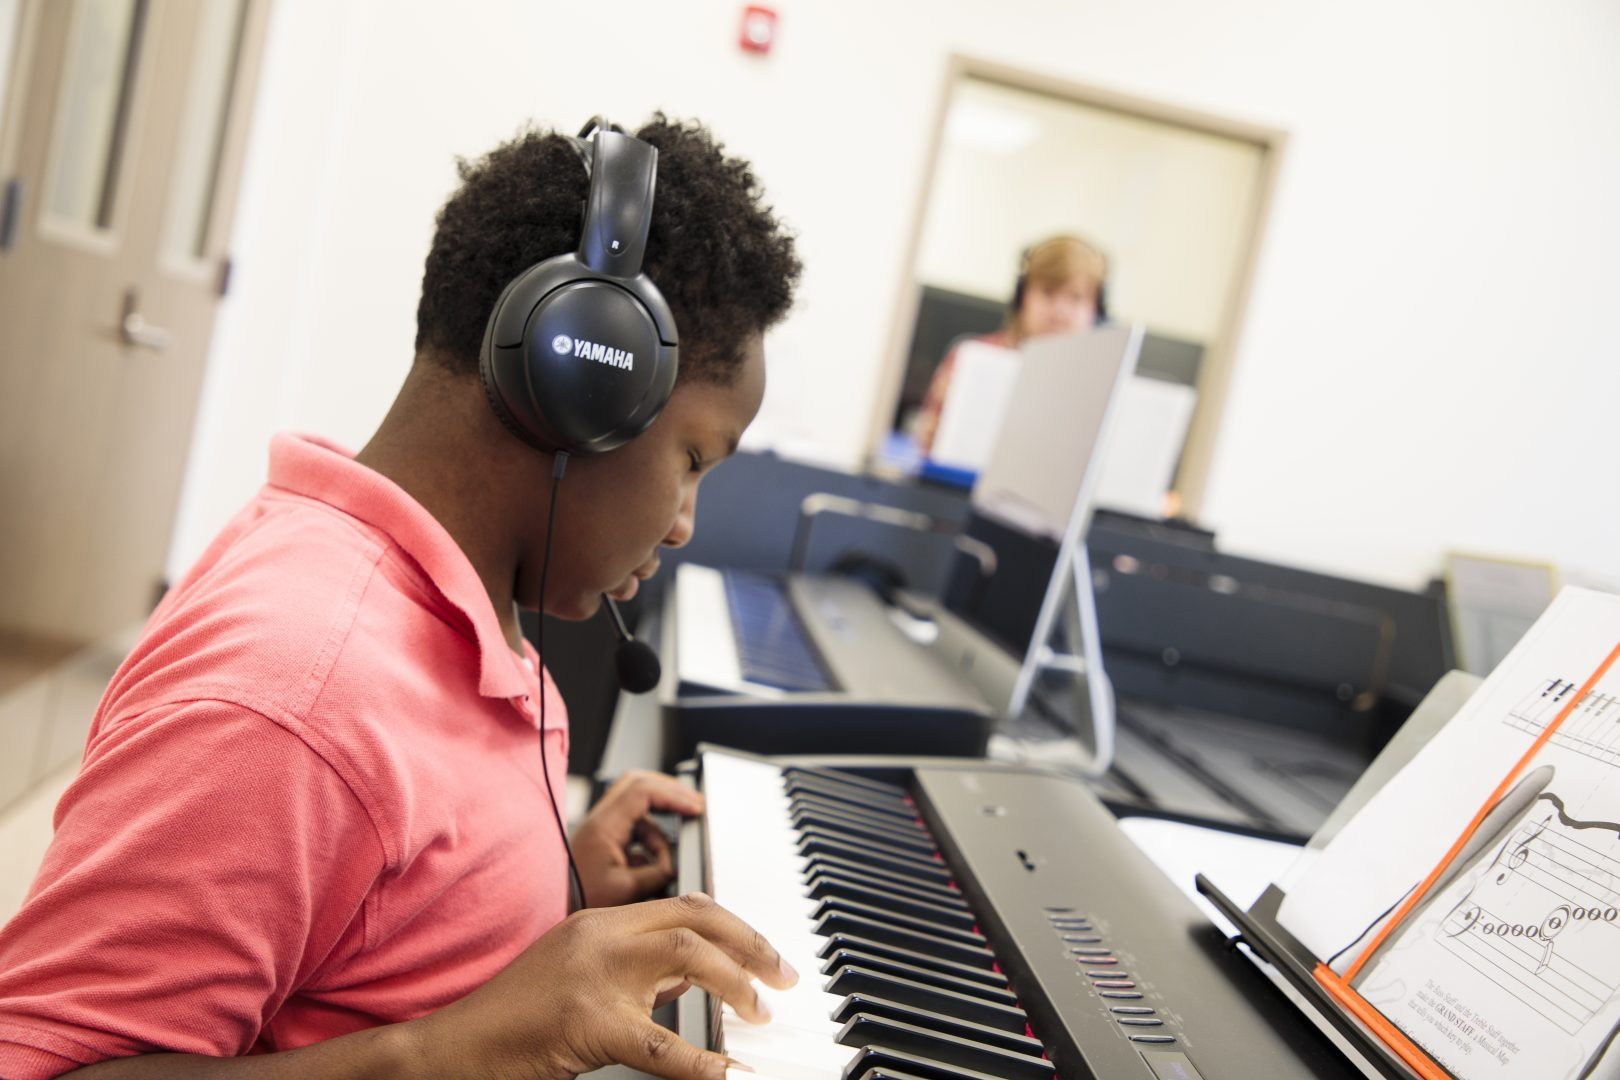 an elementary aged student playing and keyboard and wearing headphones. A teacher can be seen in the background.